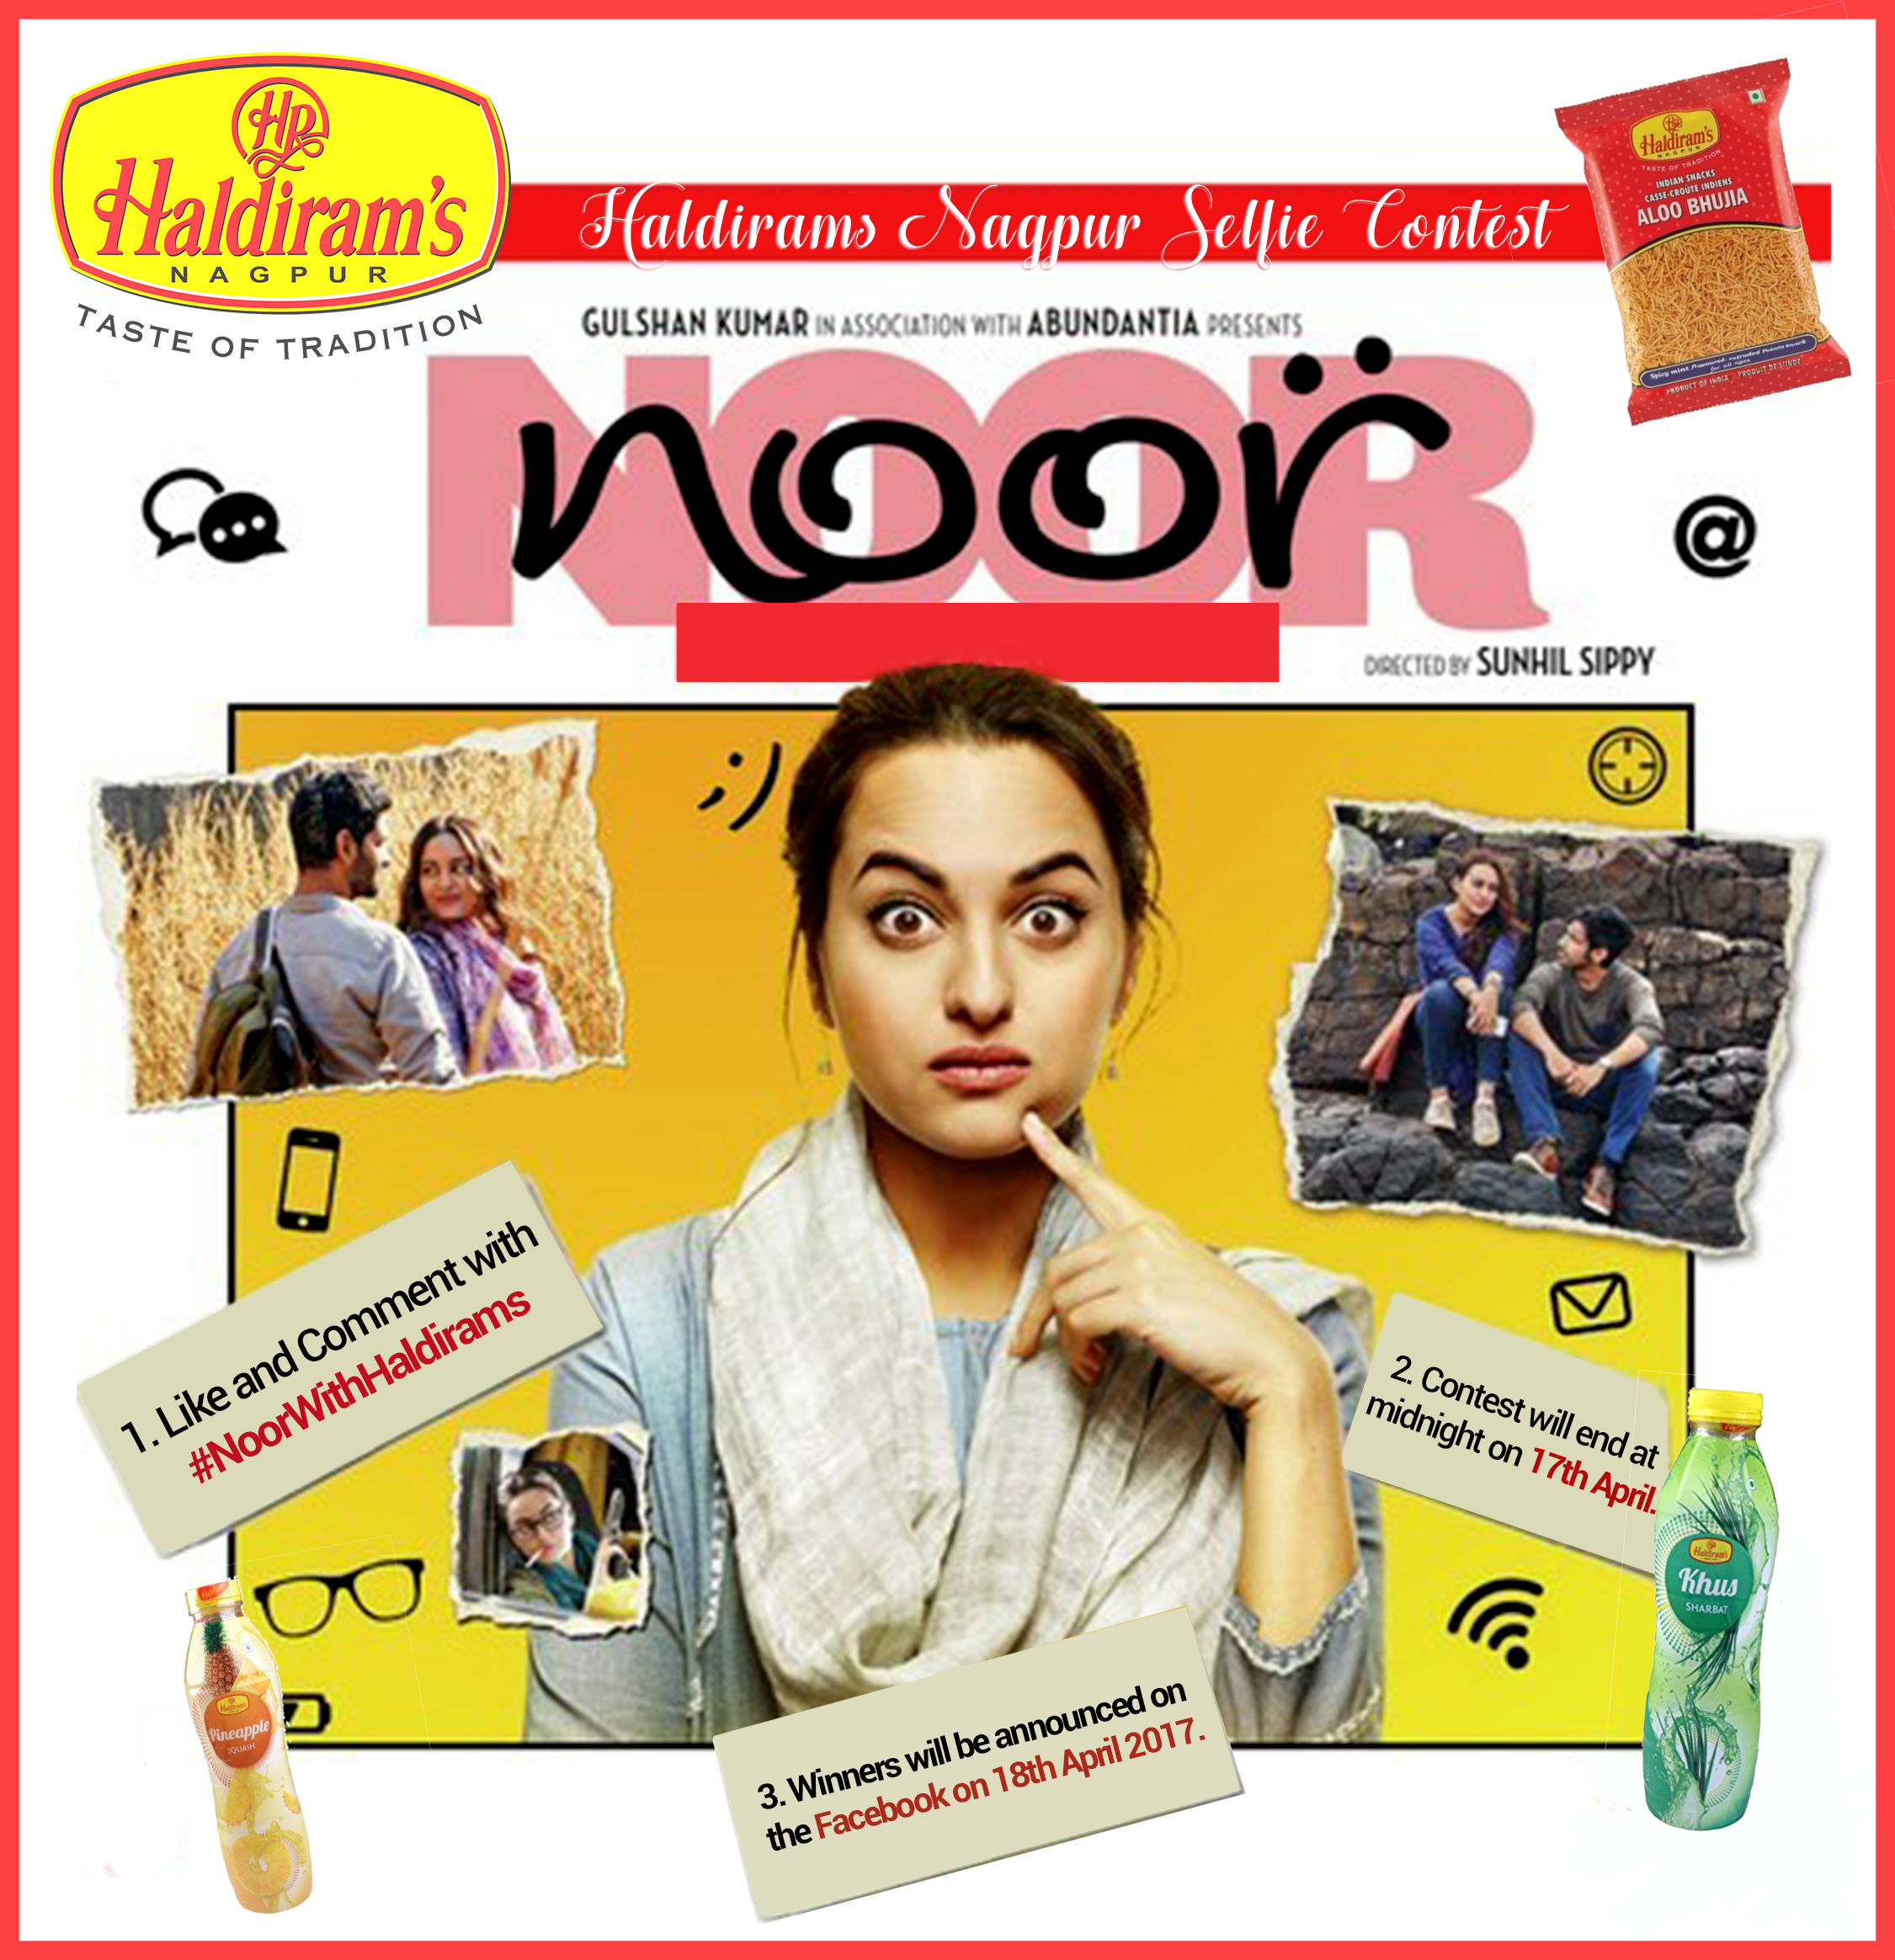 Haldirams, Haldirams Nagpur, Haldirams Nagpur Reviews, Haldirams Contest, Haldirams Offer, Noor Movie Contest